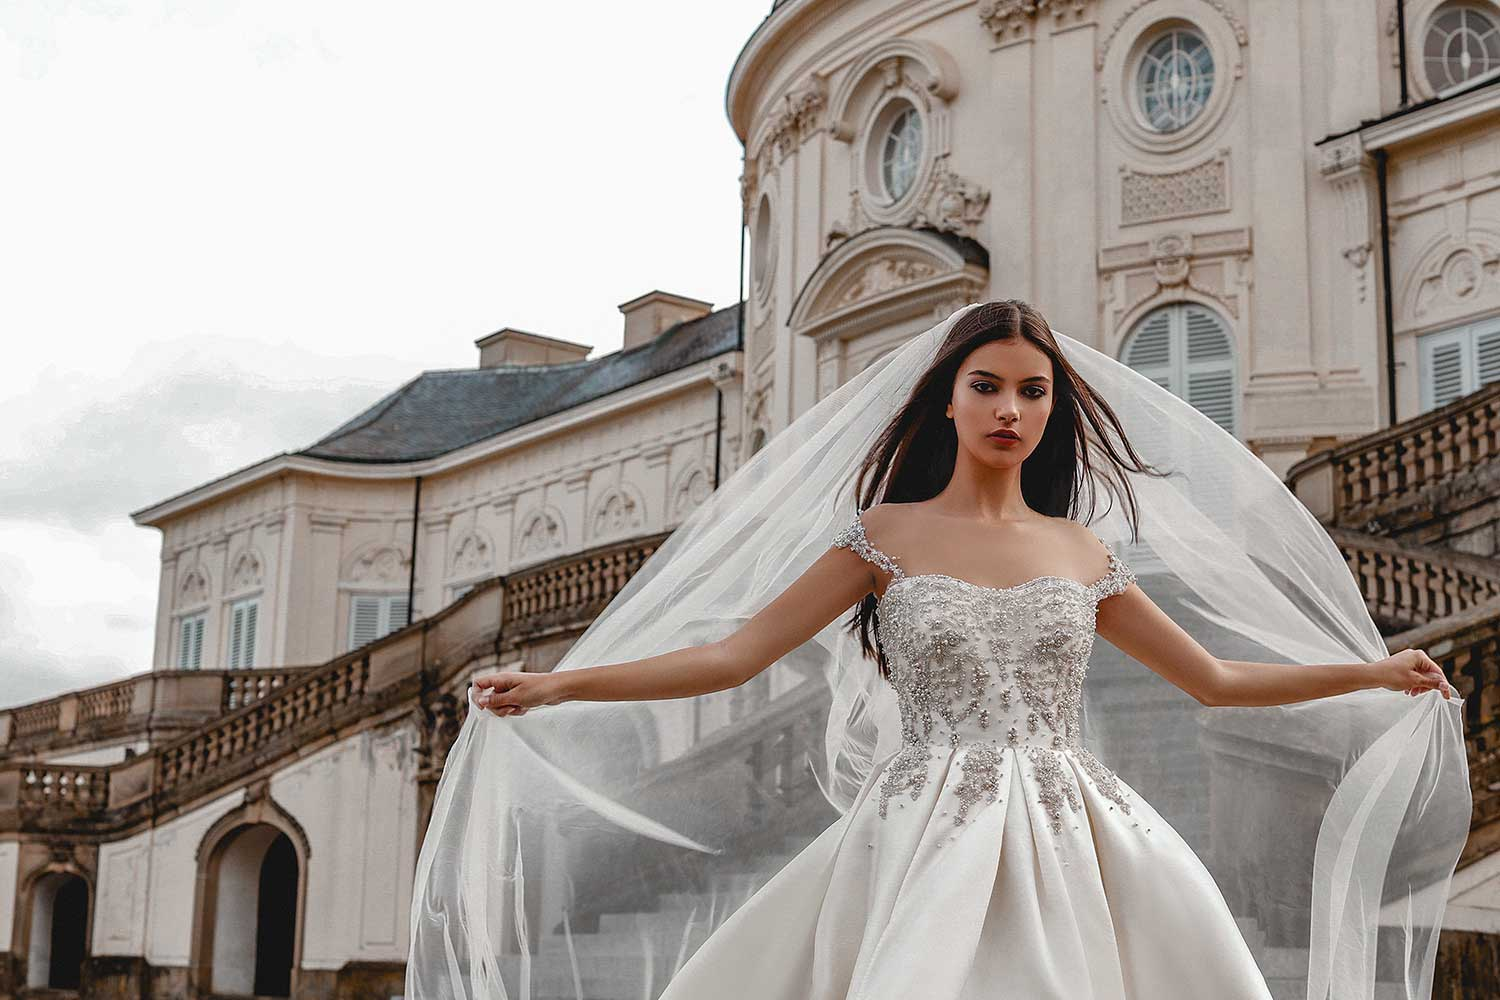 The wind playing with the bridal model's veil